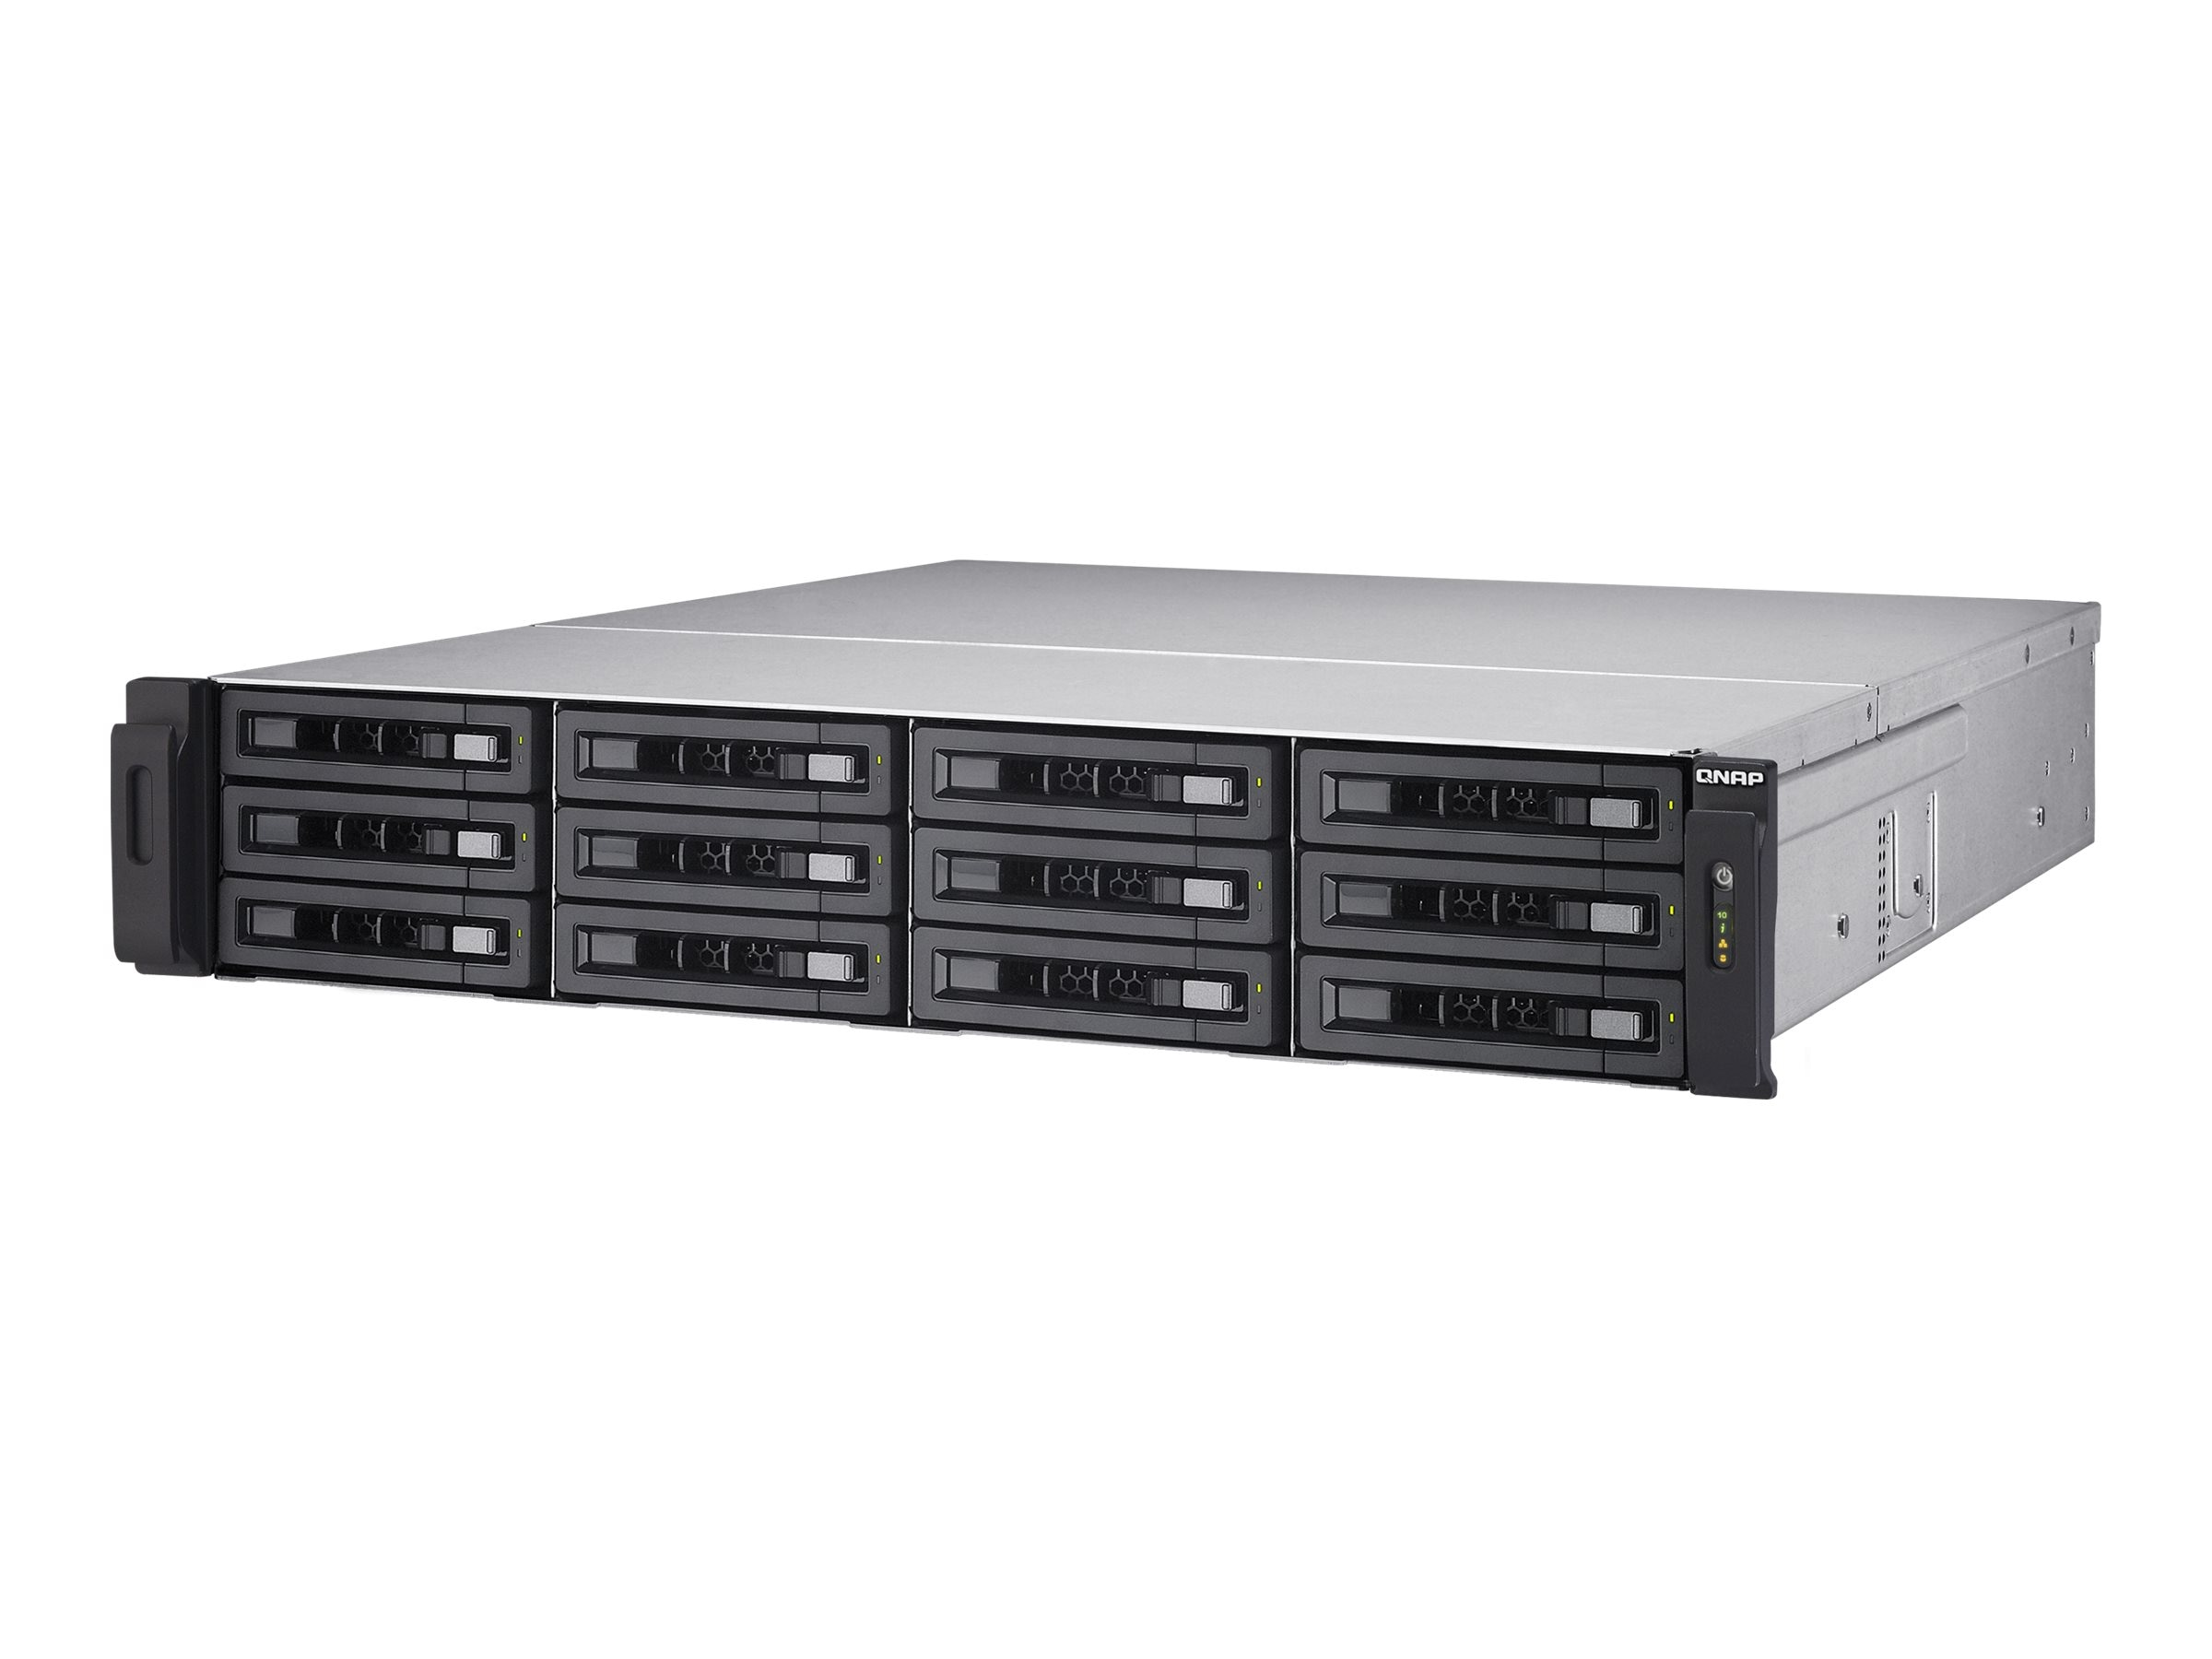 Qnap 12-Bay NAS & iSCSI  IPSAN 2U SAS 12Gb s SAS SATA 6Gb s 10G Storage w  Reduandant Power Supplies, TVS-EC1280U-SASRP8GE, 31069810, SAN Servers & Arrays